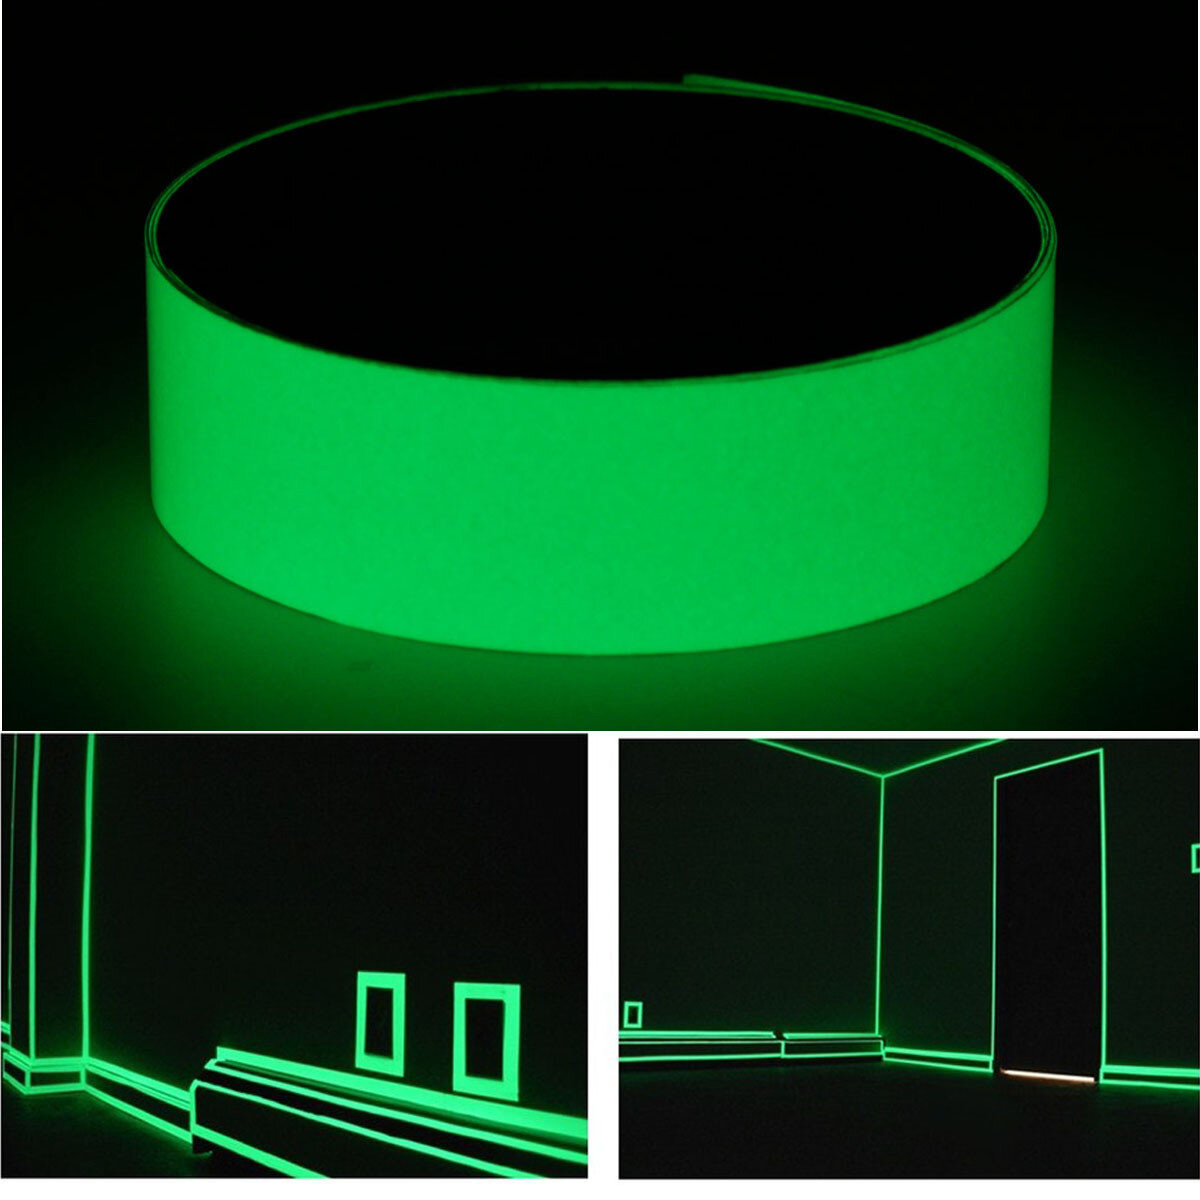 12mmx10m Photoluminescent Tape Glow At Darkness Egress Safety Mark Bright Green